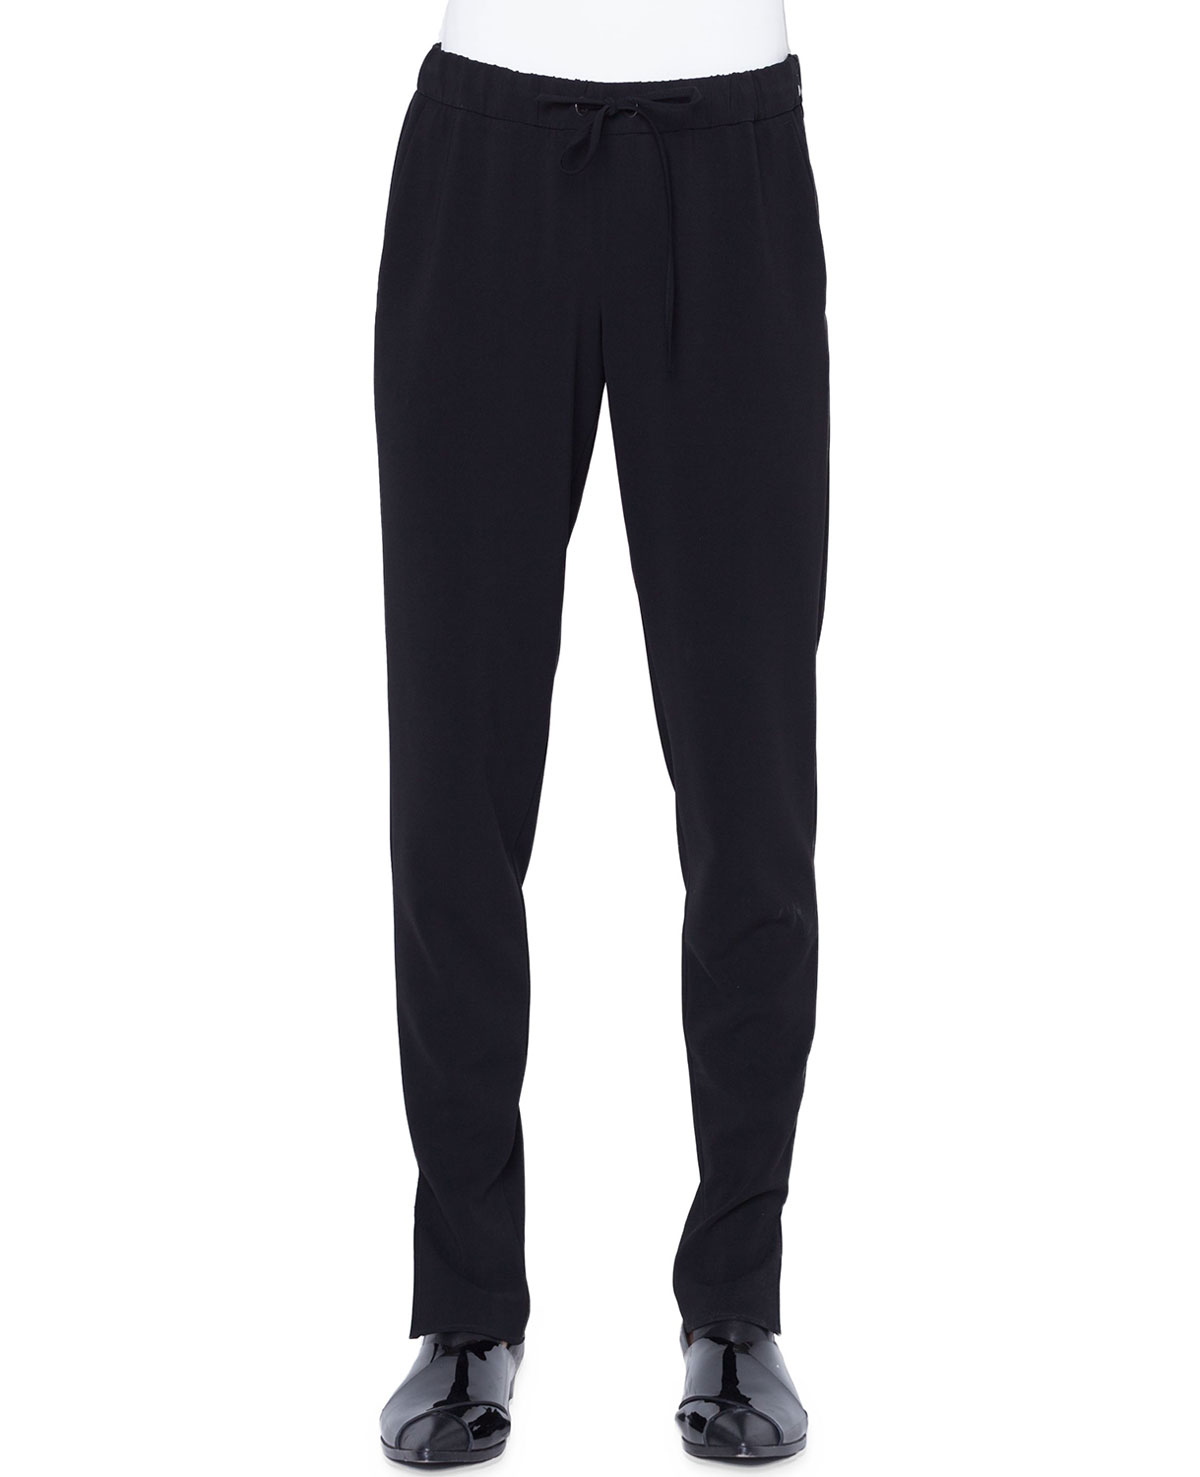 Mike Tapered Jersey Pants, Black